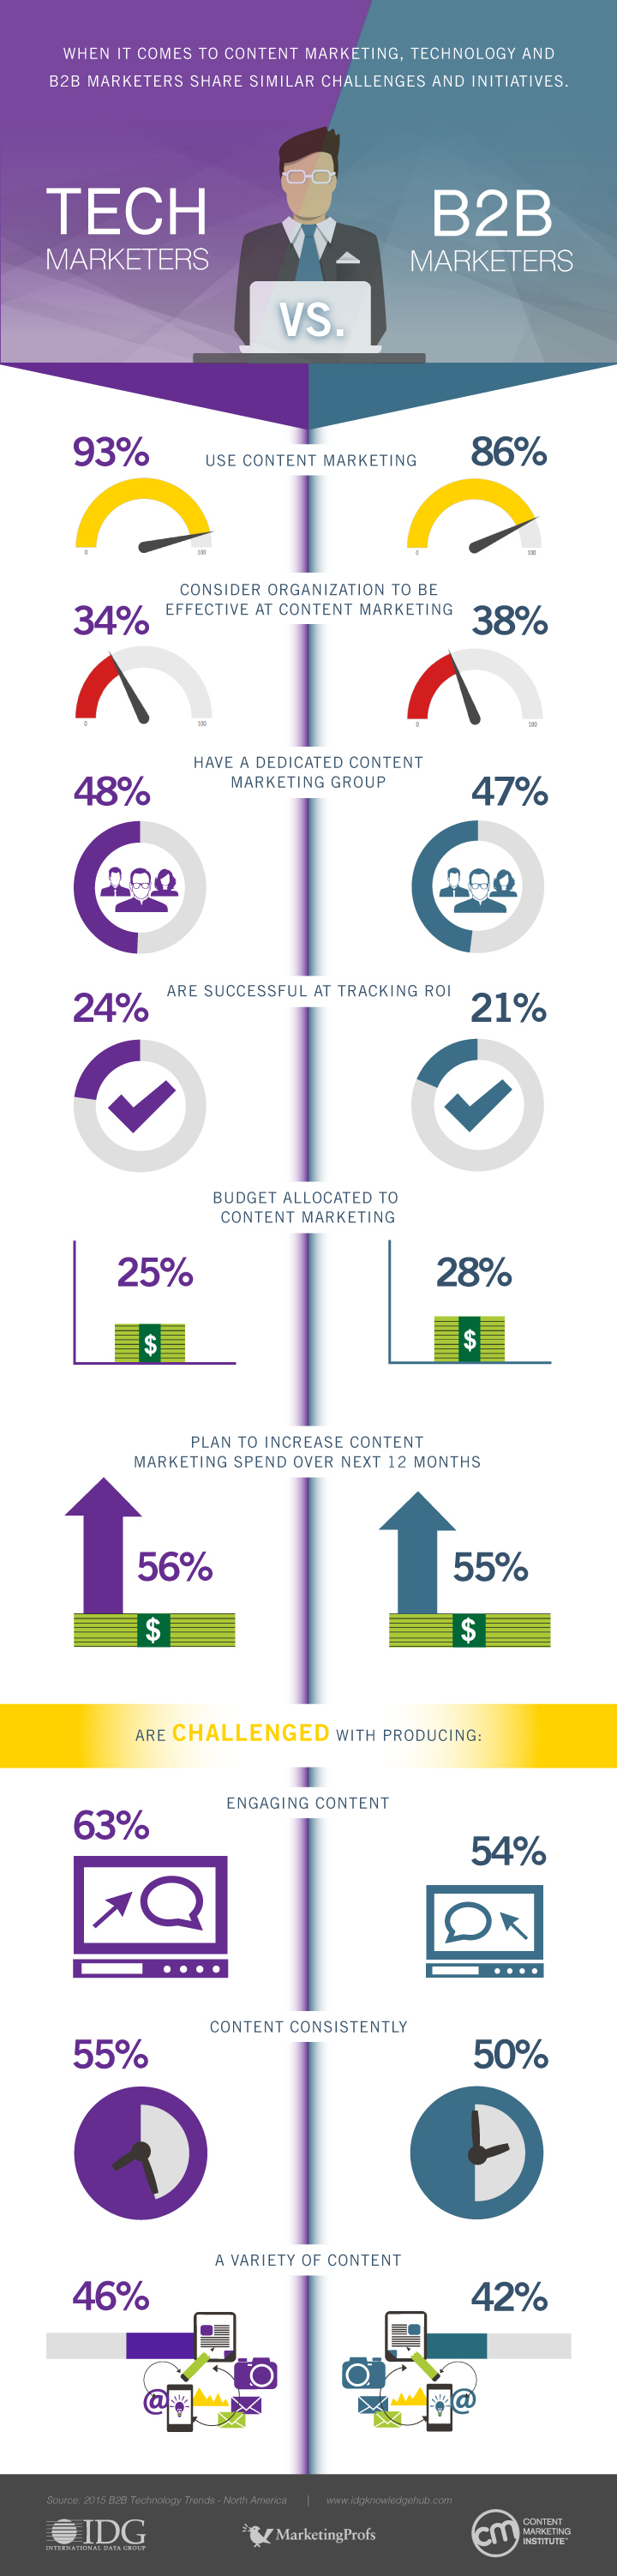 Tech Marketers vs. B2B Marketers -- they share similar content marketing initiatives & challenges